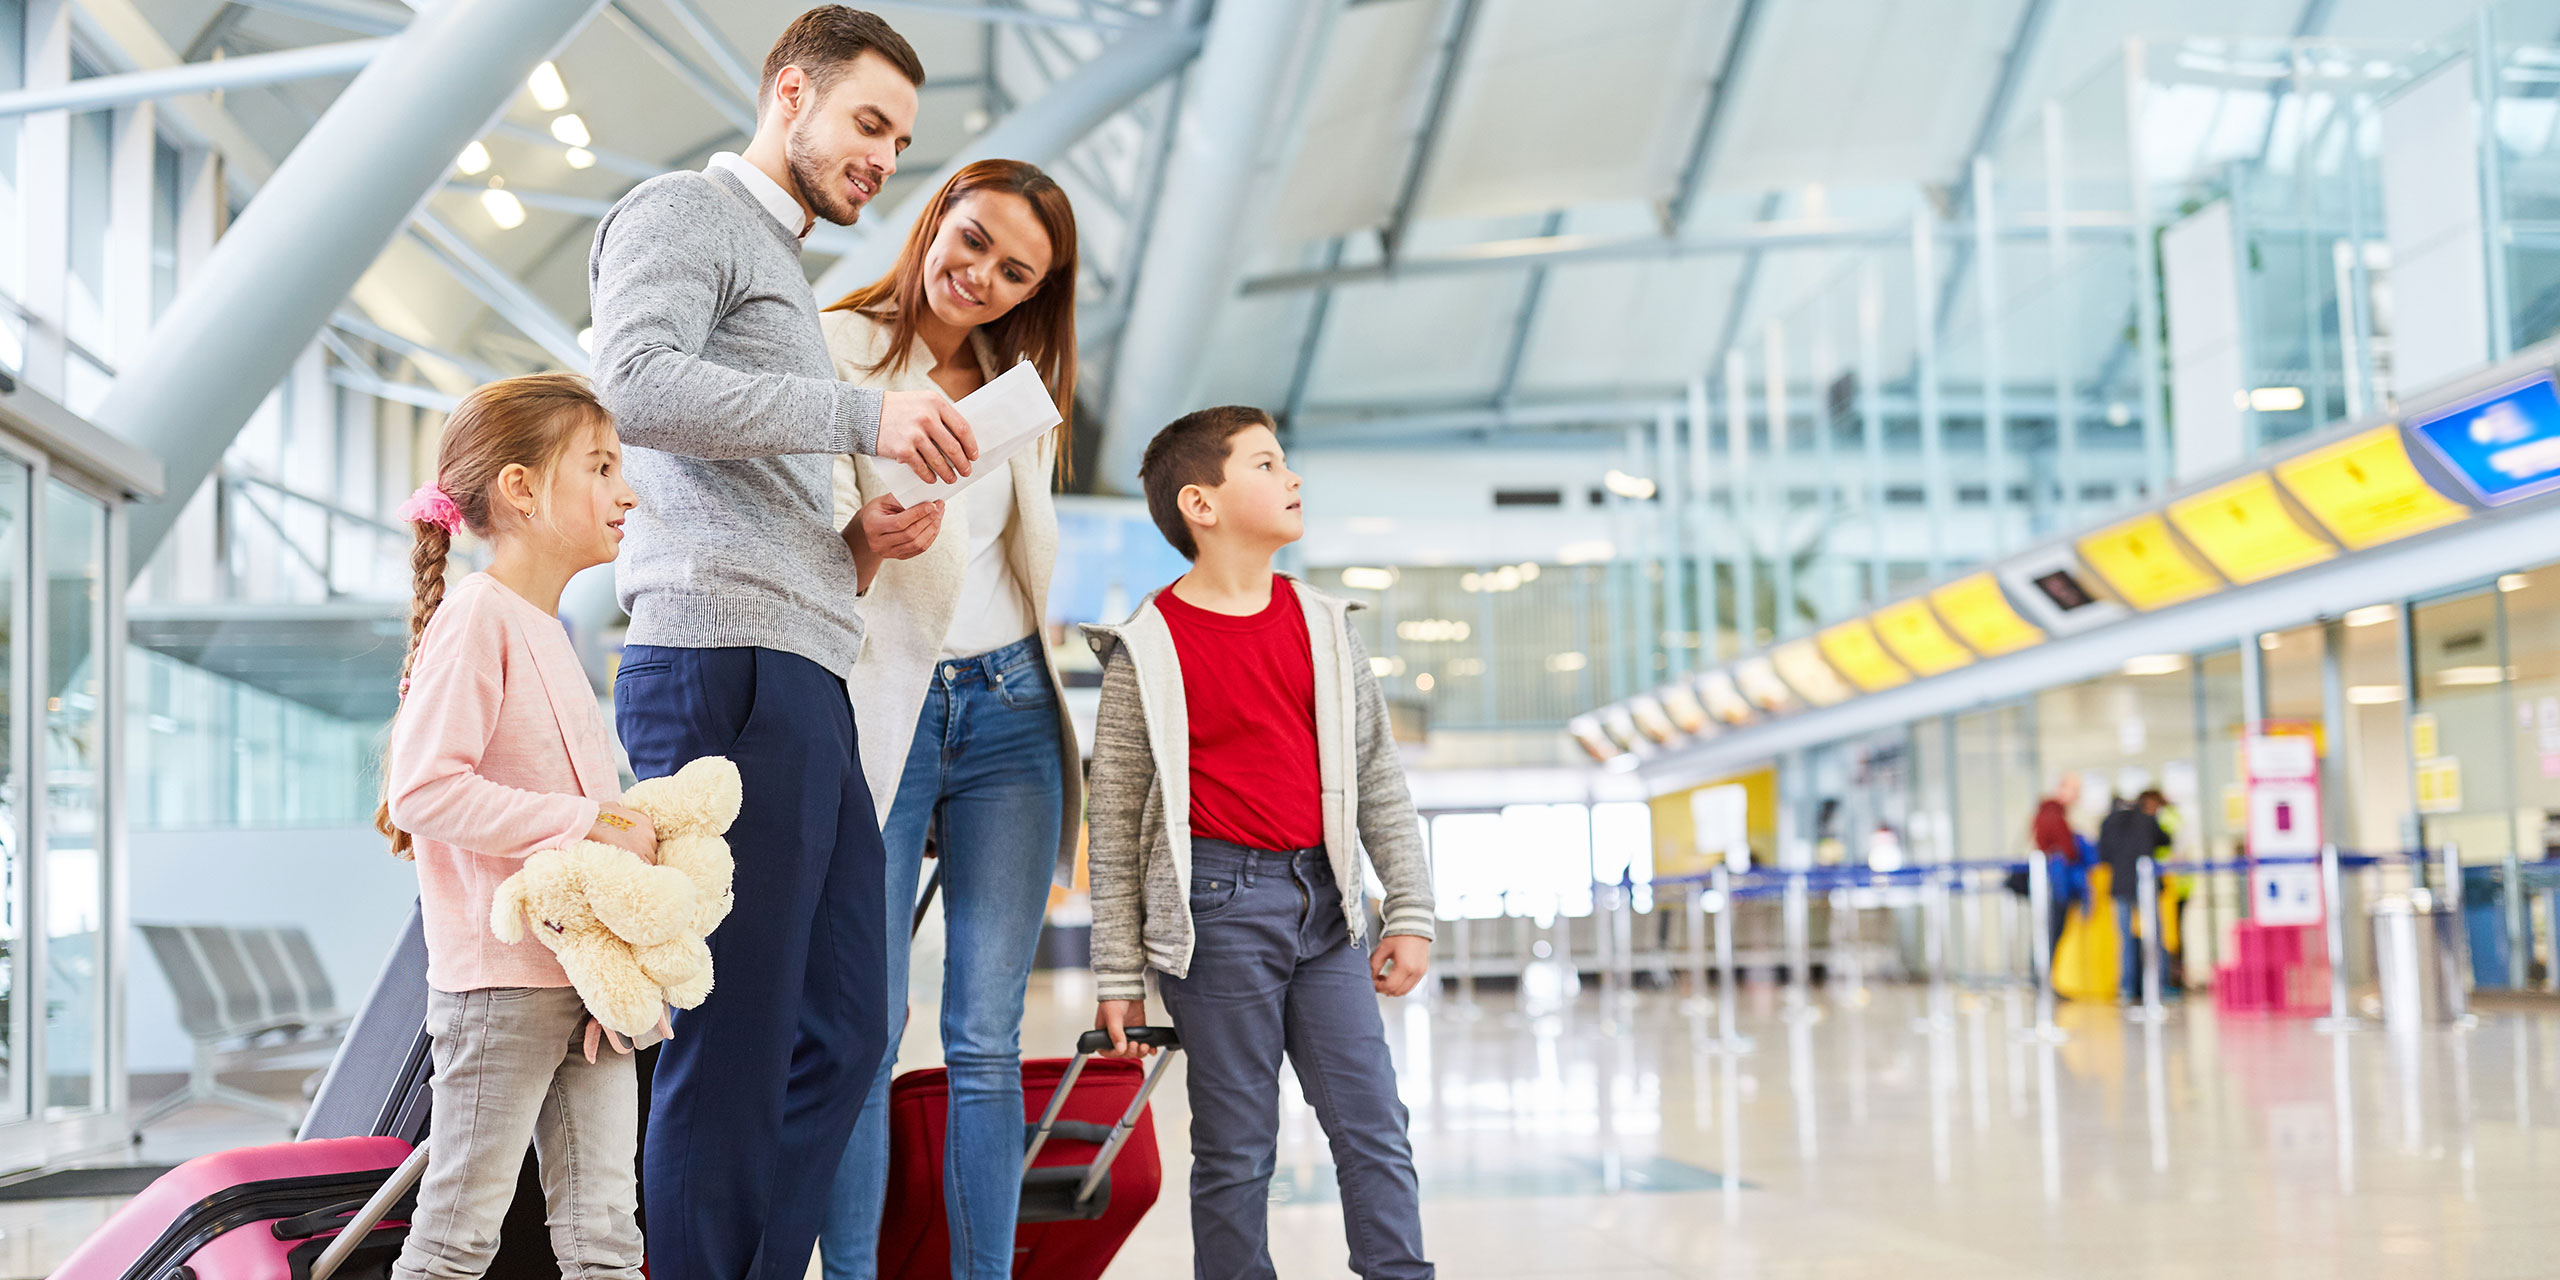 Family Standing in Airport; Courtesy of Robert Kneschke/Shutterstock.com